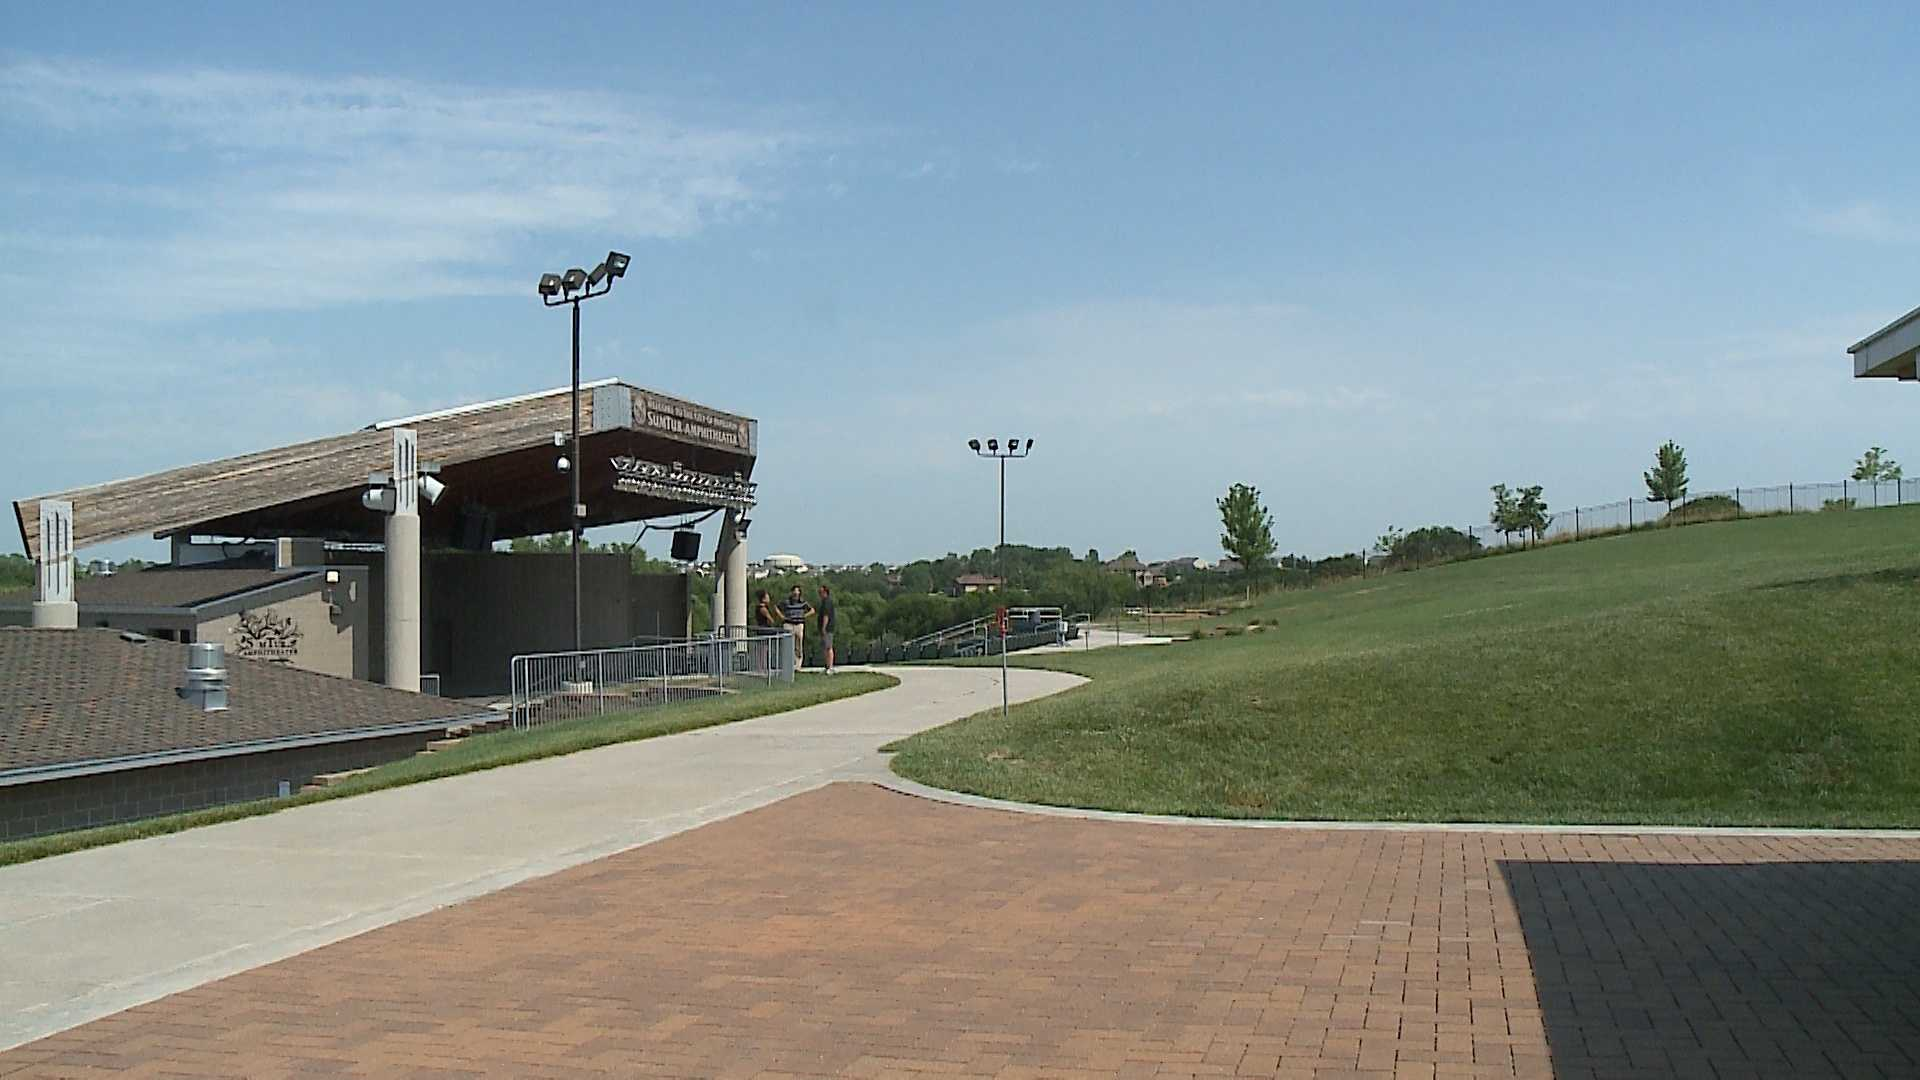 Papillion's Sumtur Amphitheater is preparing its stage to welcome Willie Nelson this weekend.